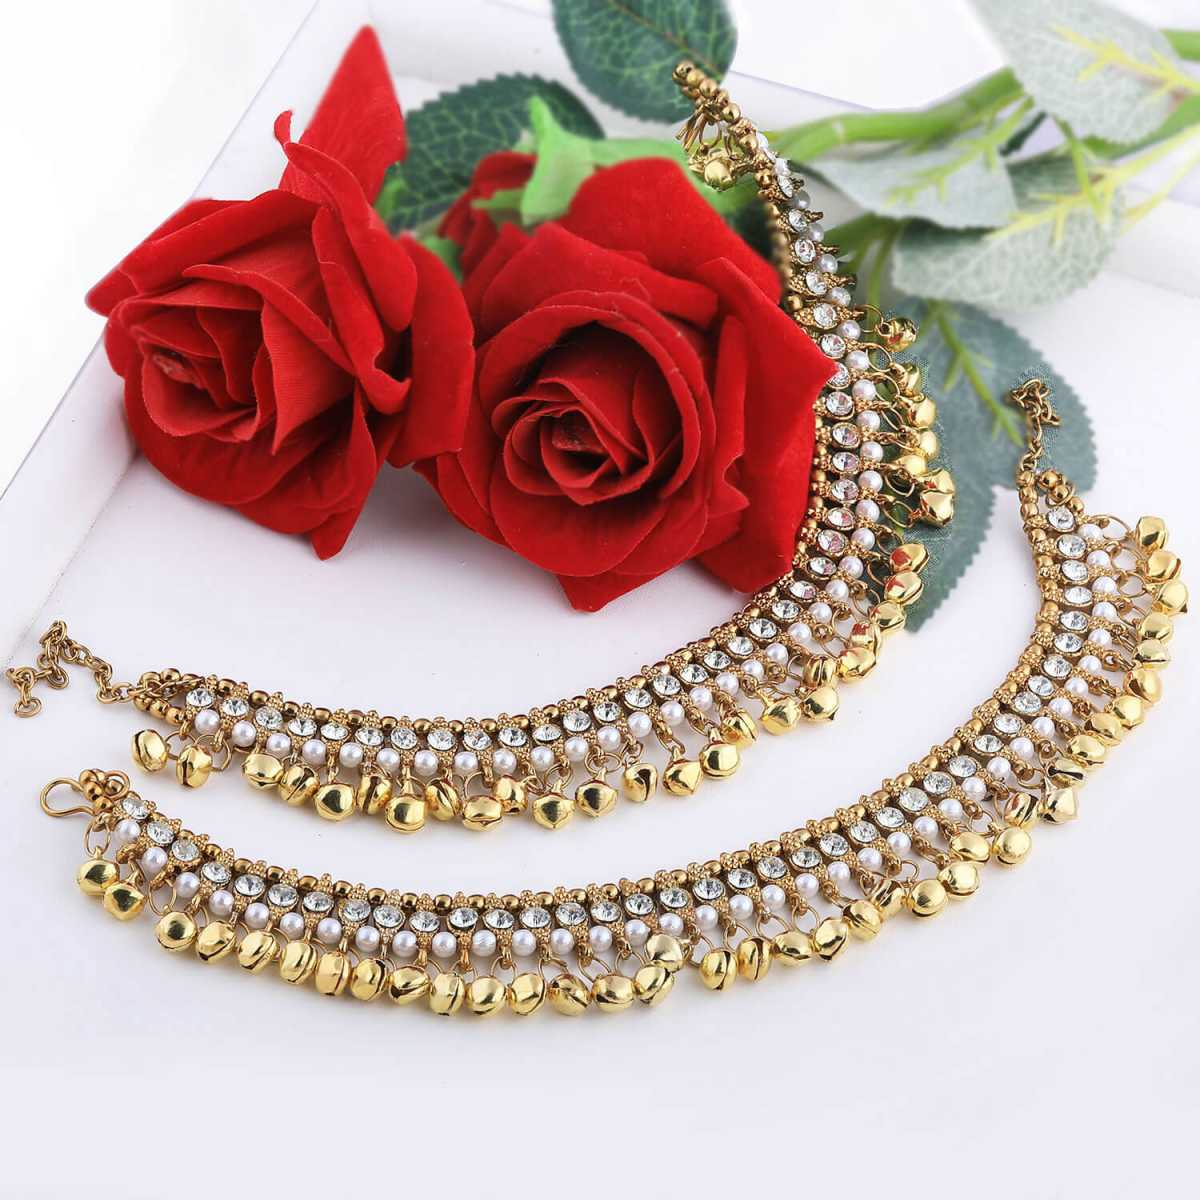 SILVER SHINE Golden Ethnic Ghungroo Kundan Alloy Anklet For Girl And Women